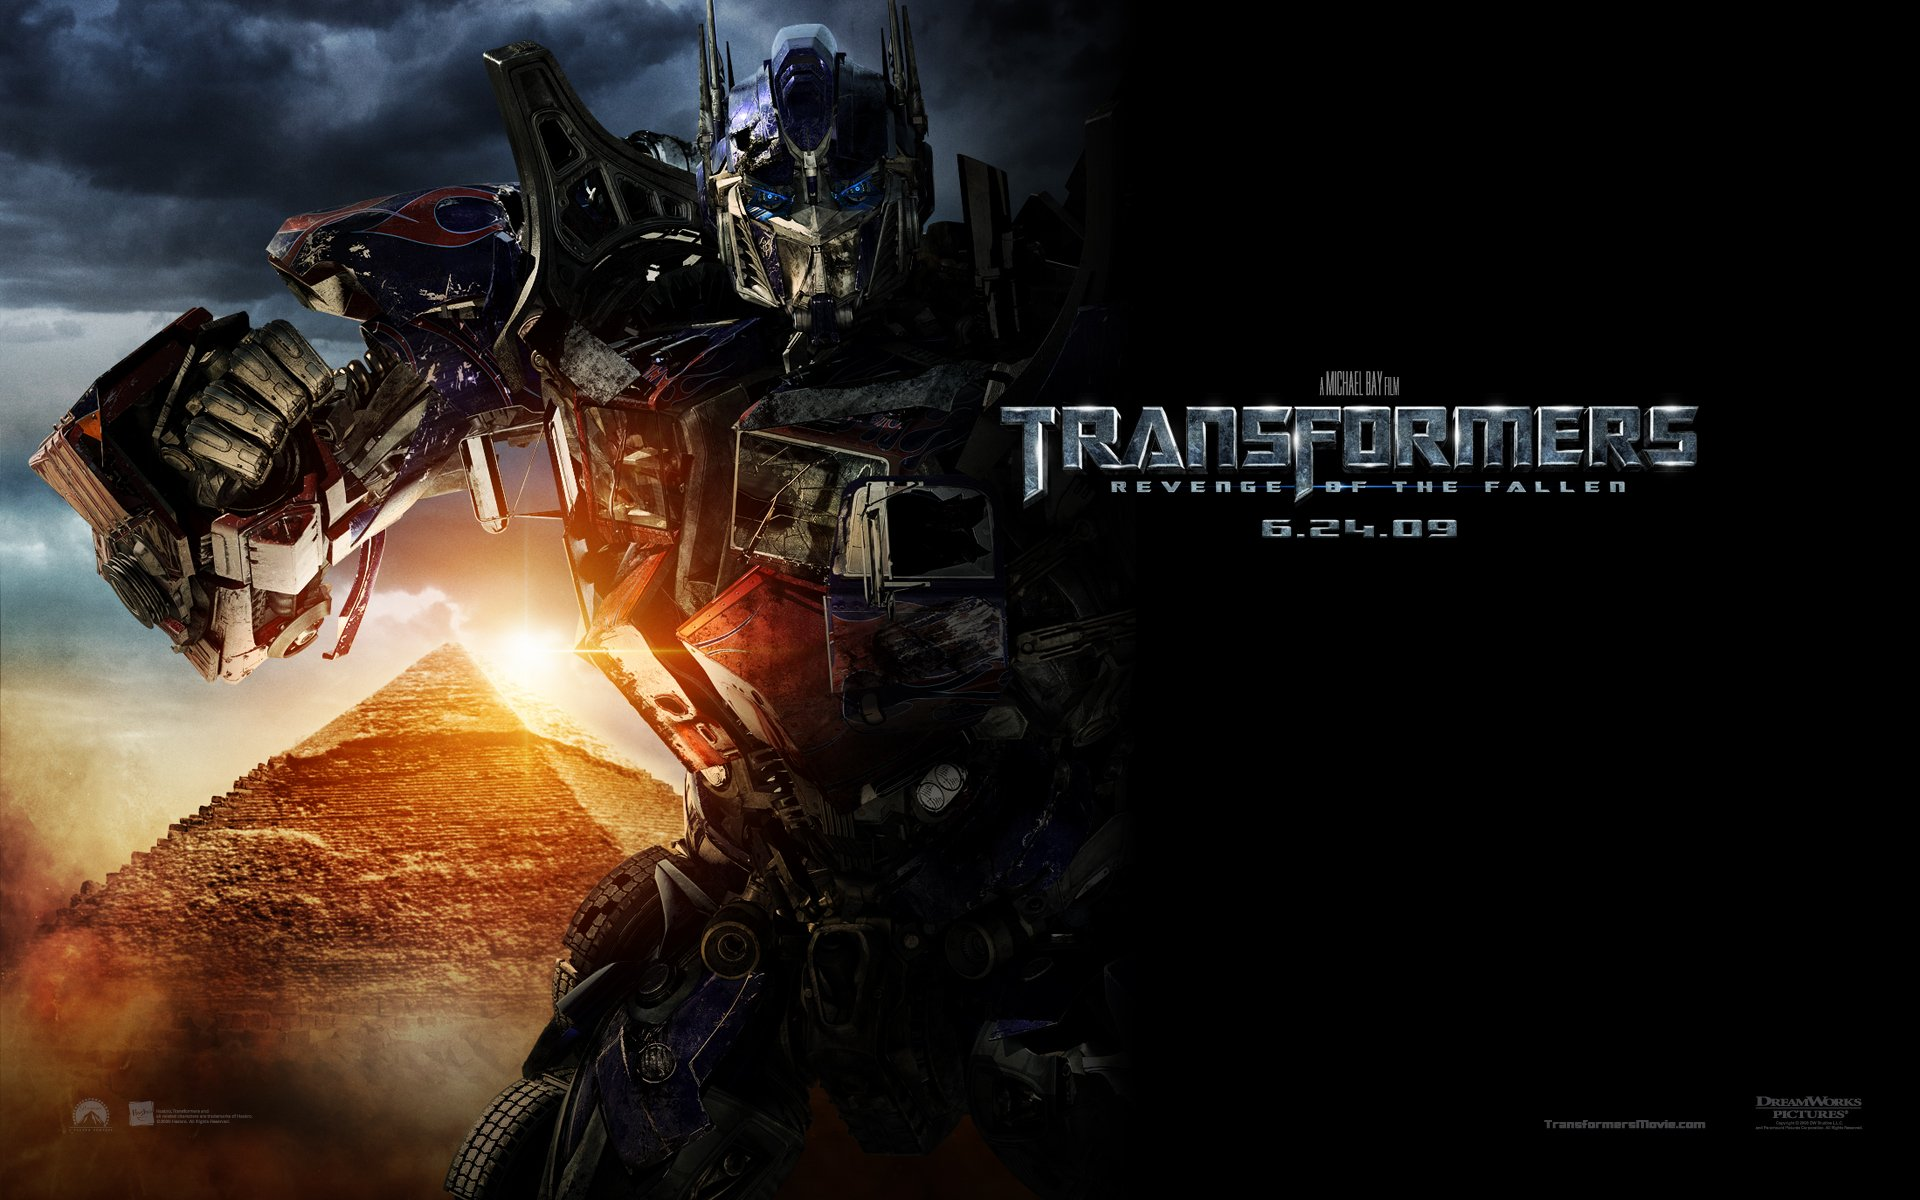 Hd Transformers Wallpapers & Backgrounds For Free Download - Optimus Prime From Transformers Revenge Of The Fall - HD Wallpaper